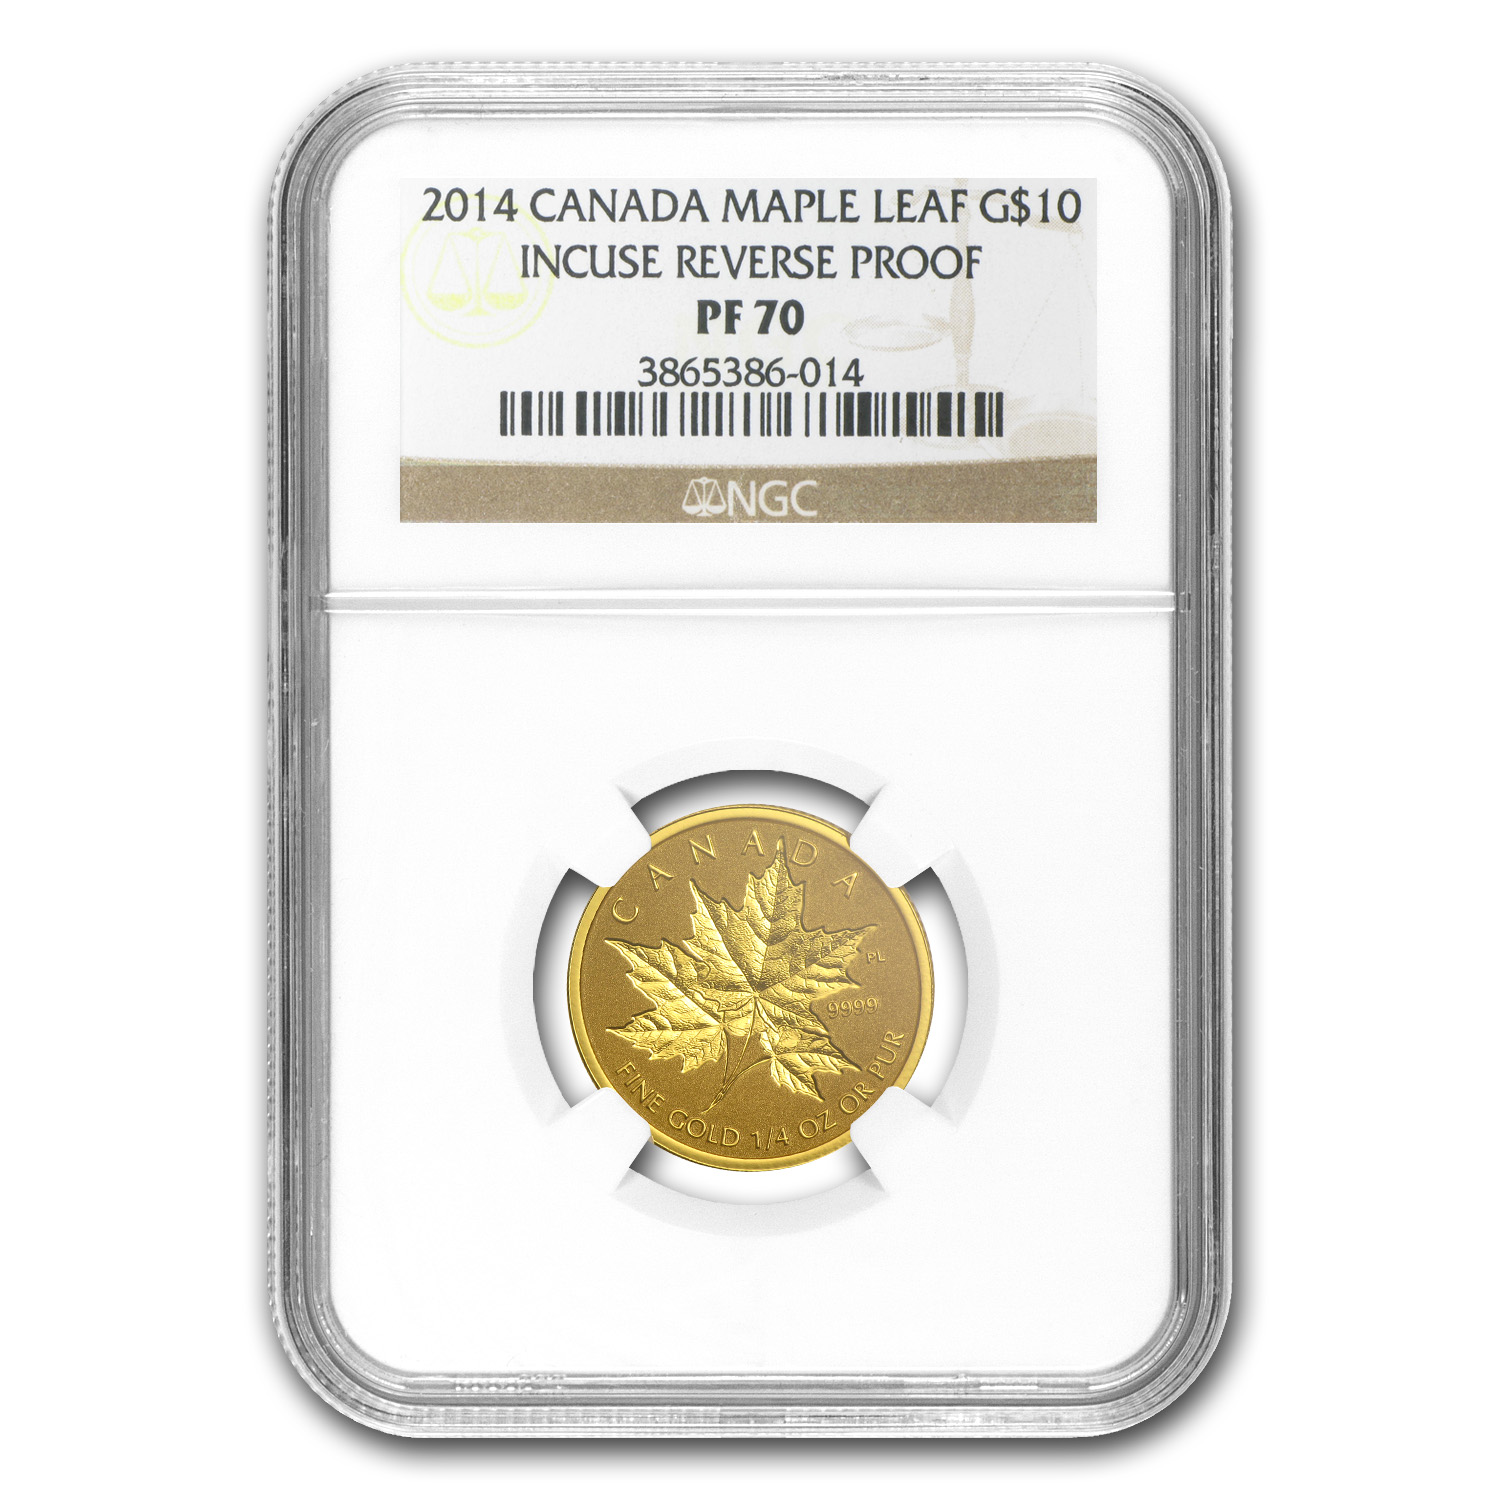 2014 1/4 oz Gold Canadian Reverse Proof Maple Leaf PF-70 NGC